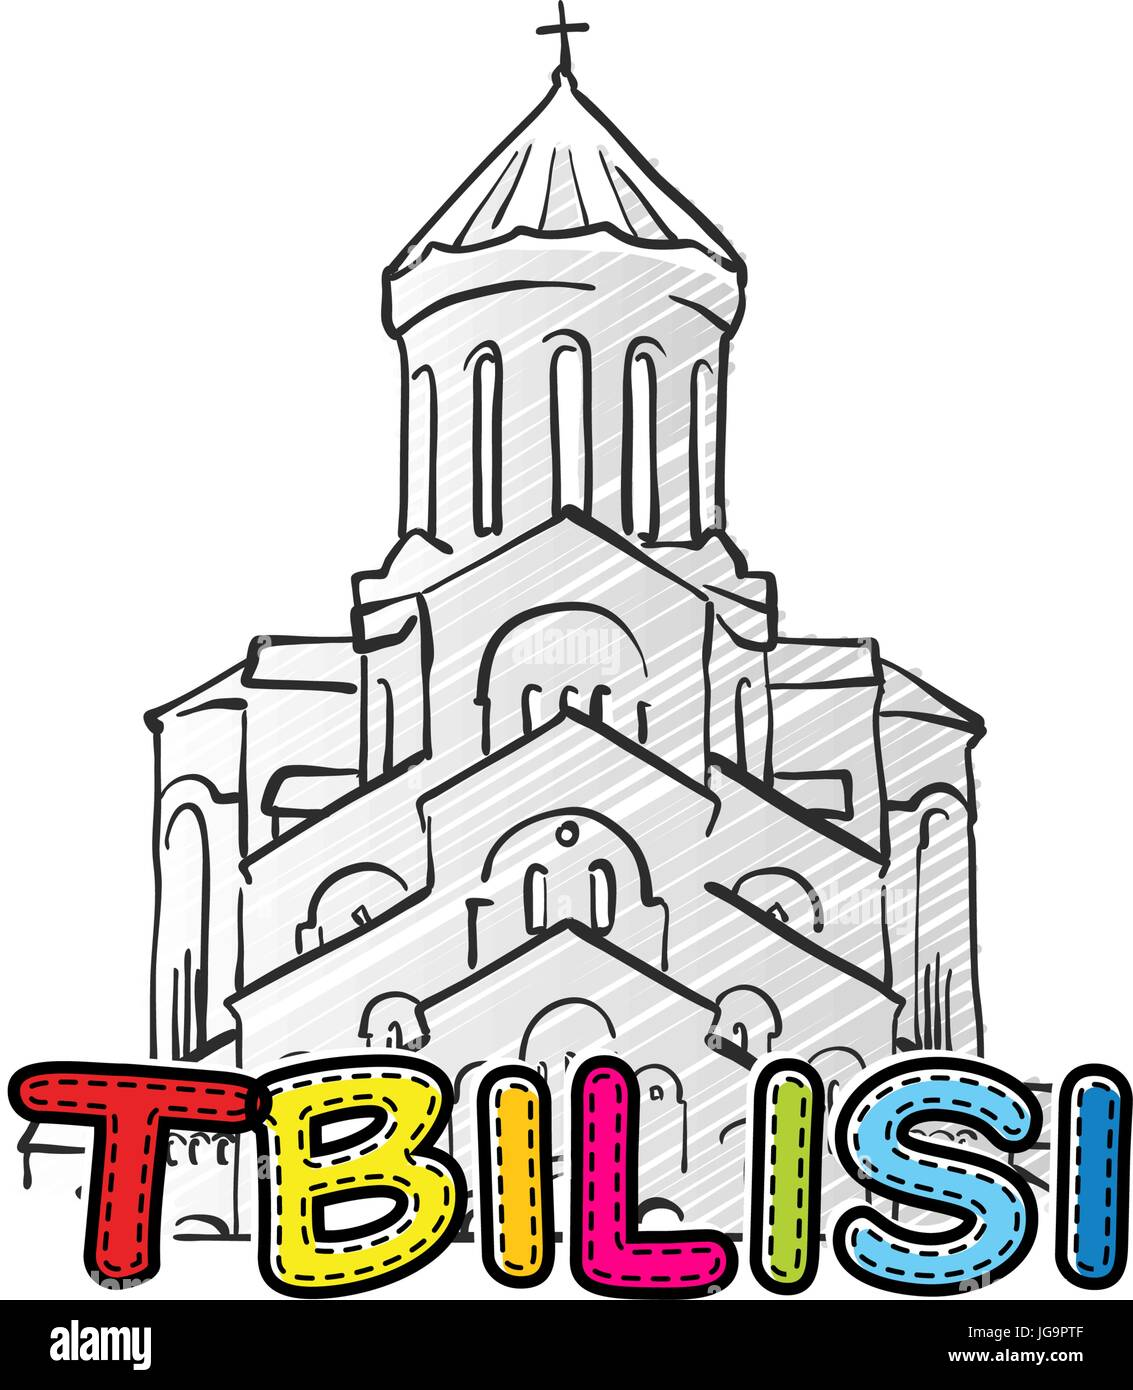 Tbilisi beautiful sketched icon, famaous hand-drawn landmark, city name lettering, vector illustration - Stock Vector